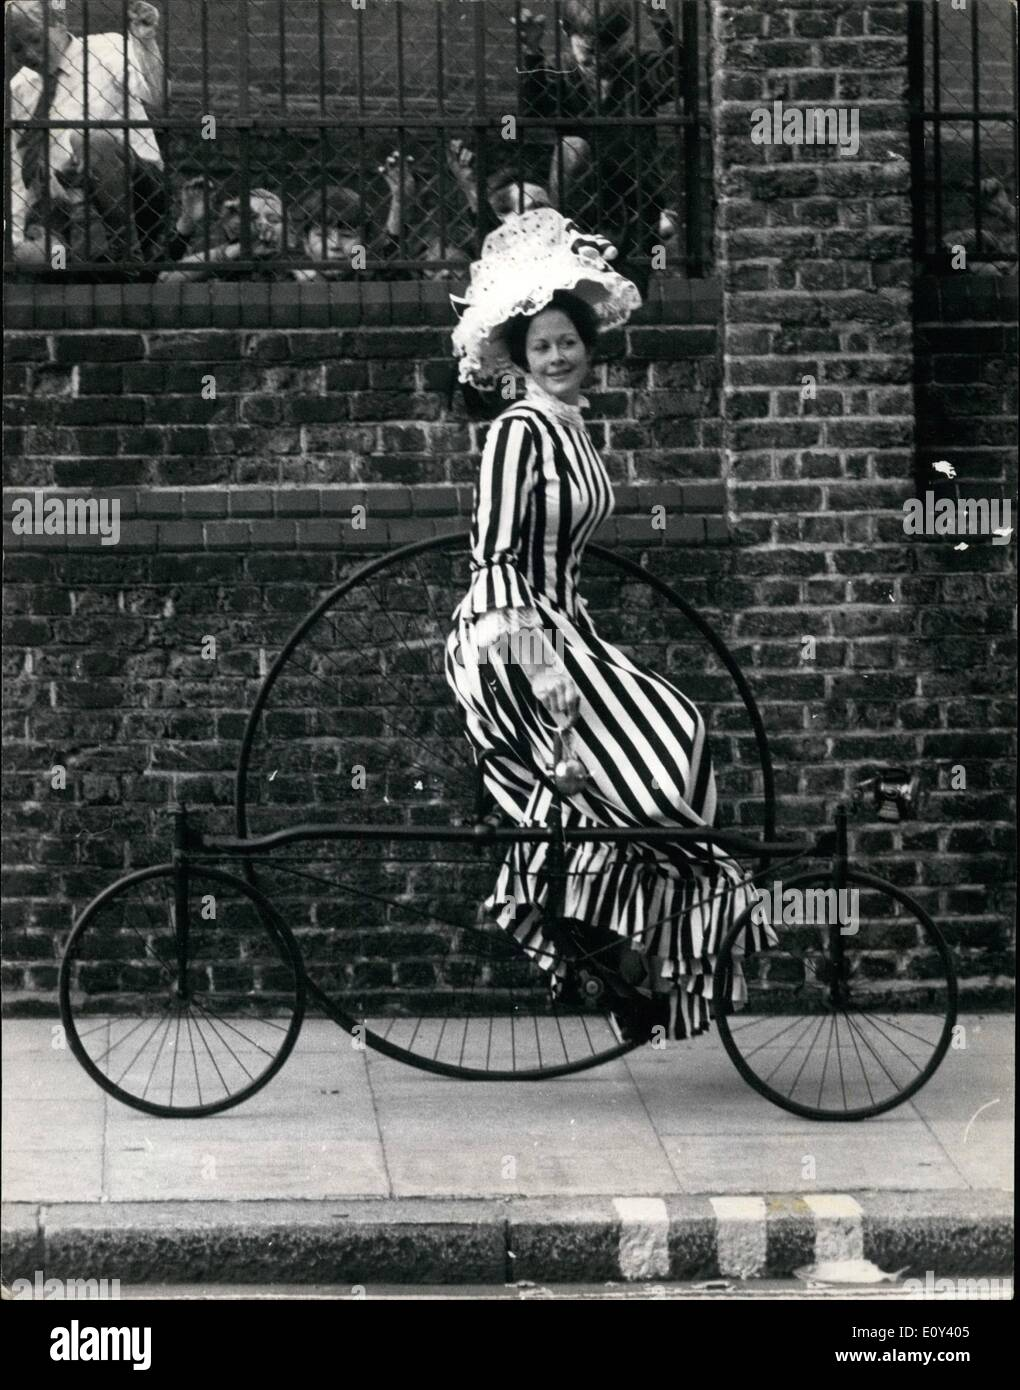 Oct. 10, 1968 - SOTHEBY'S SALE BY AUCTION OF VINTAGE AND VETERAN VEHICLES: Veteran, Edwardian and Vintage vehicles are to be sold by auction by Sotheby's at the Royal Horticultural Society's New Hall, Westminster on Thursday Oct. 24th. Photo shows Cycling in the 1870's was a tricky business but Susan Came, dressed in full Victorian cycling dress managed to ride this Rudge Rotary Tricycle (1878) one of the vintage vehicles which will be up for sale next Thursday. - Stock Image